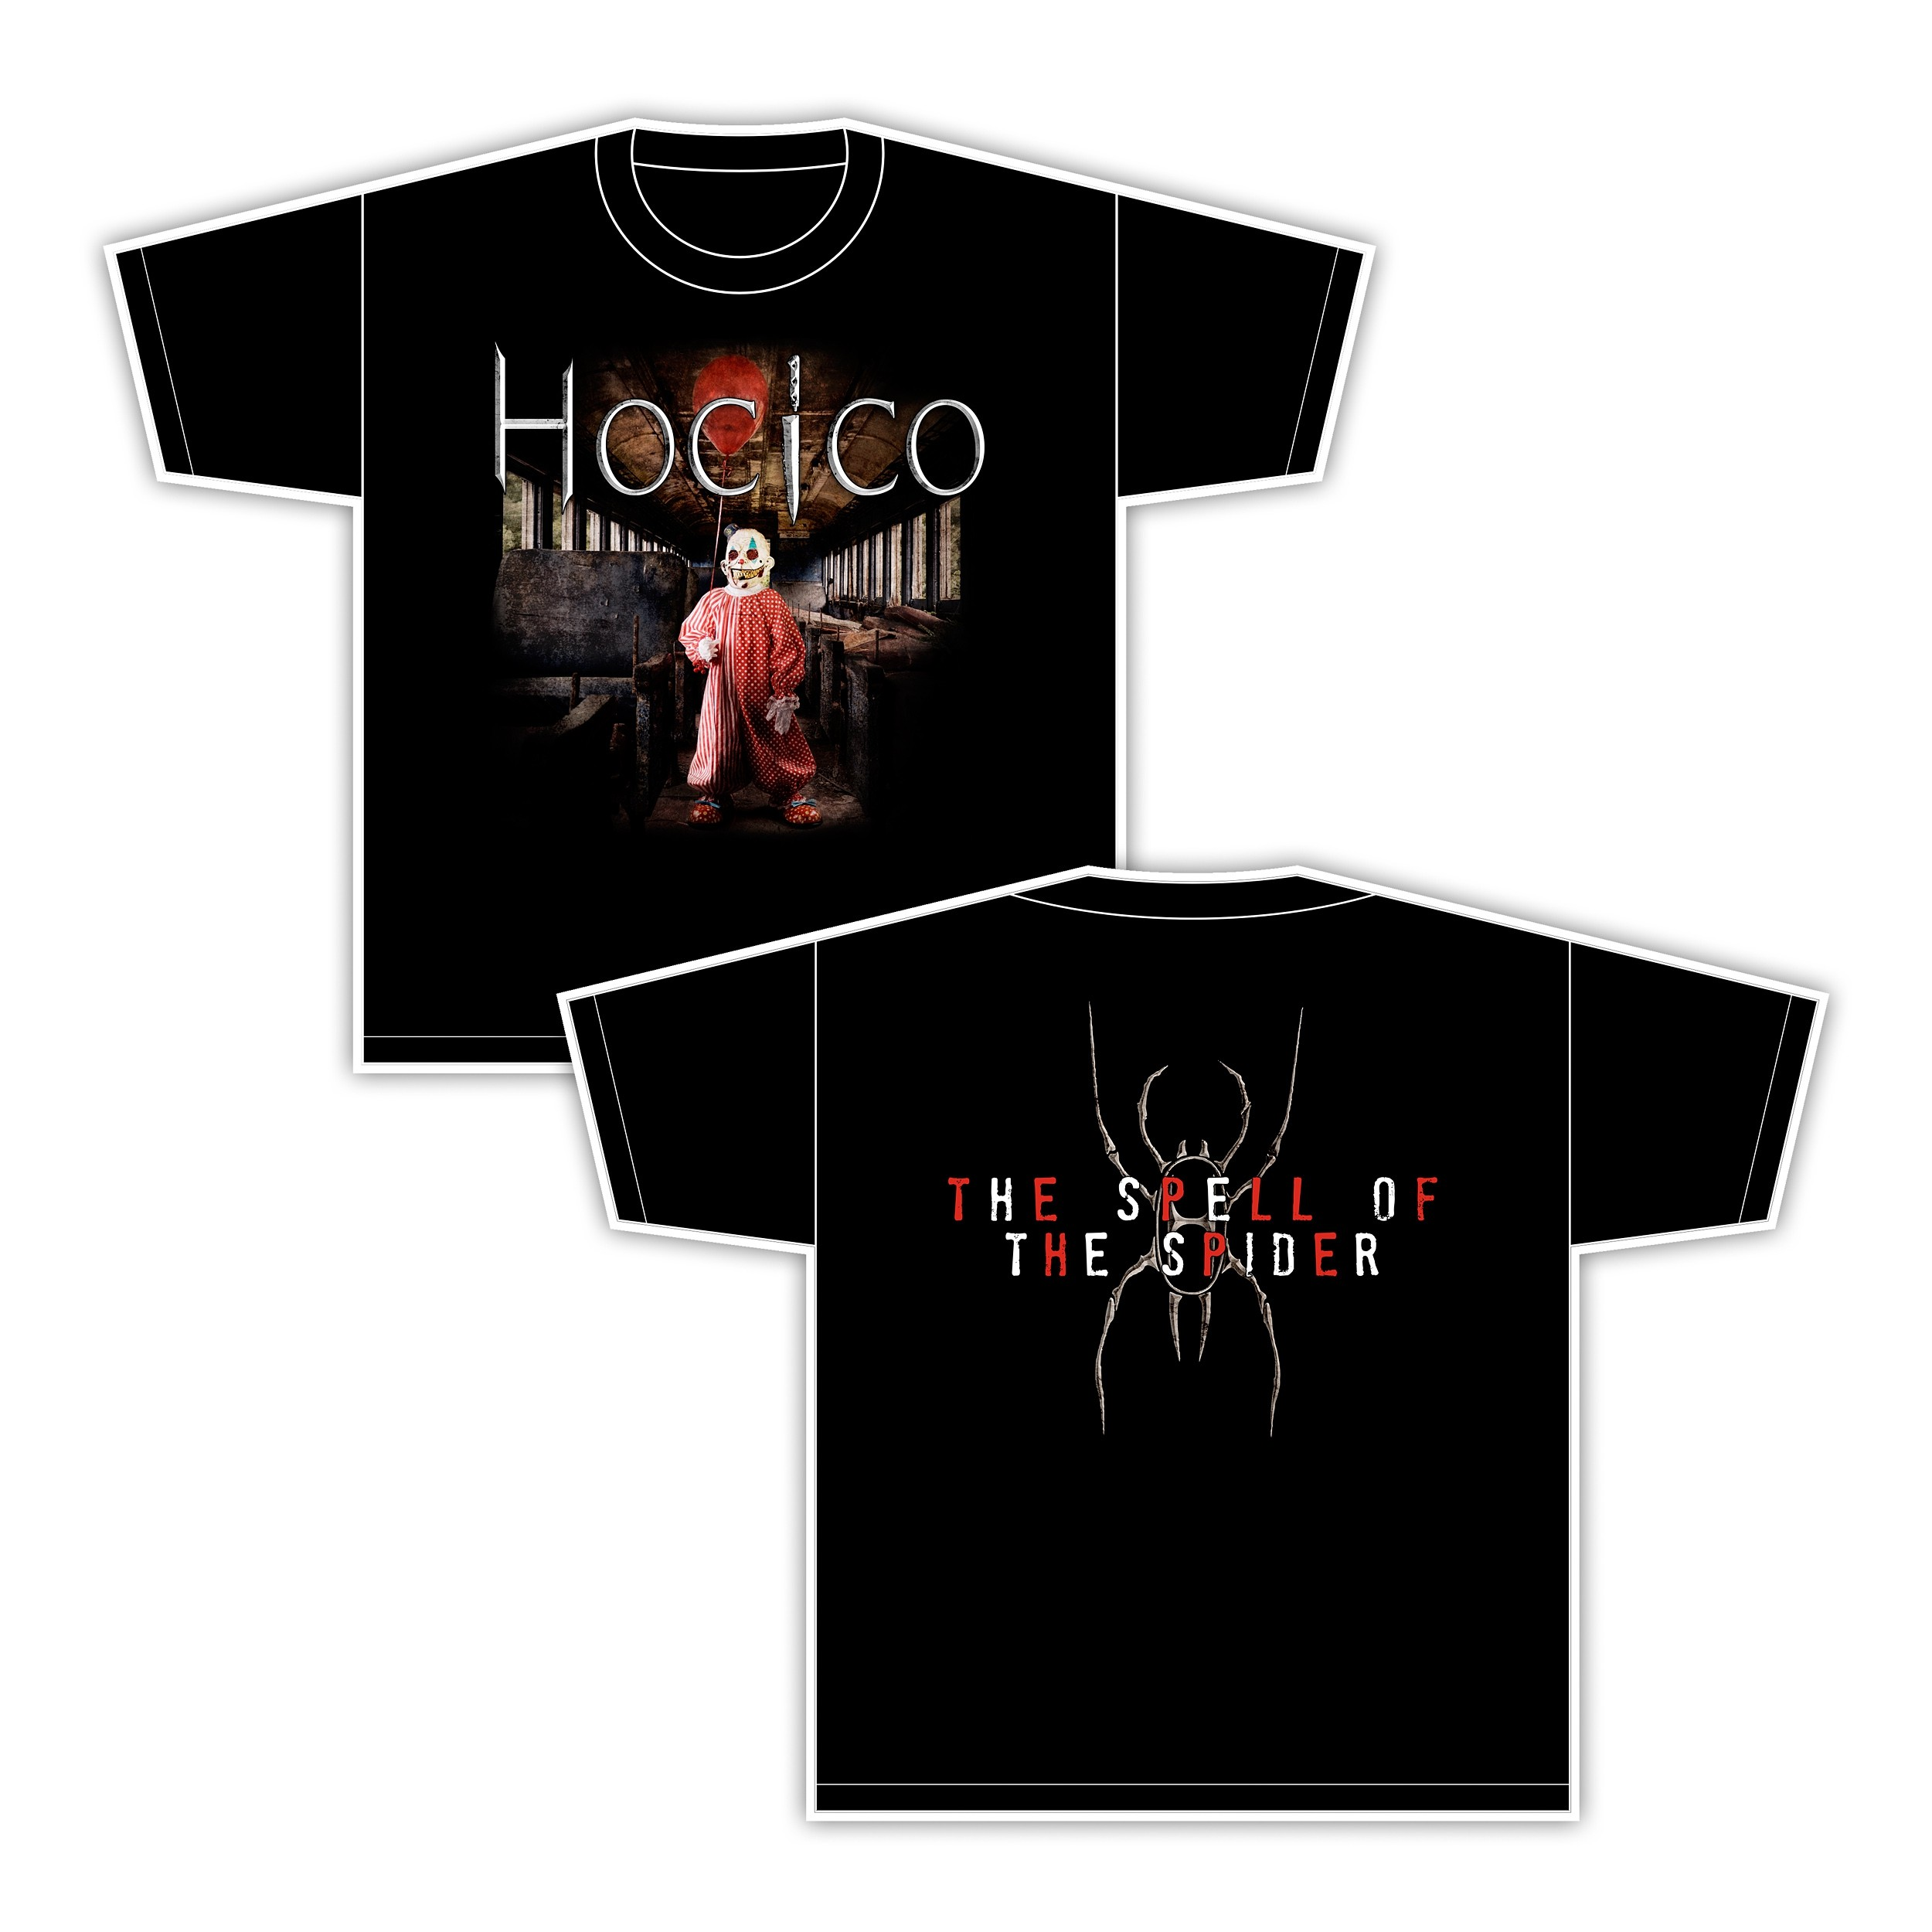 Hocico - The Spell Of The Spider - T-Shirt